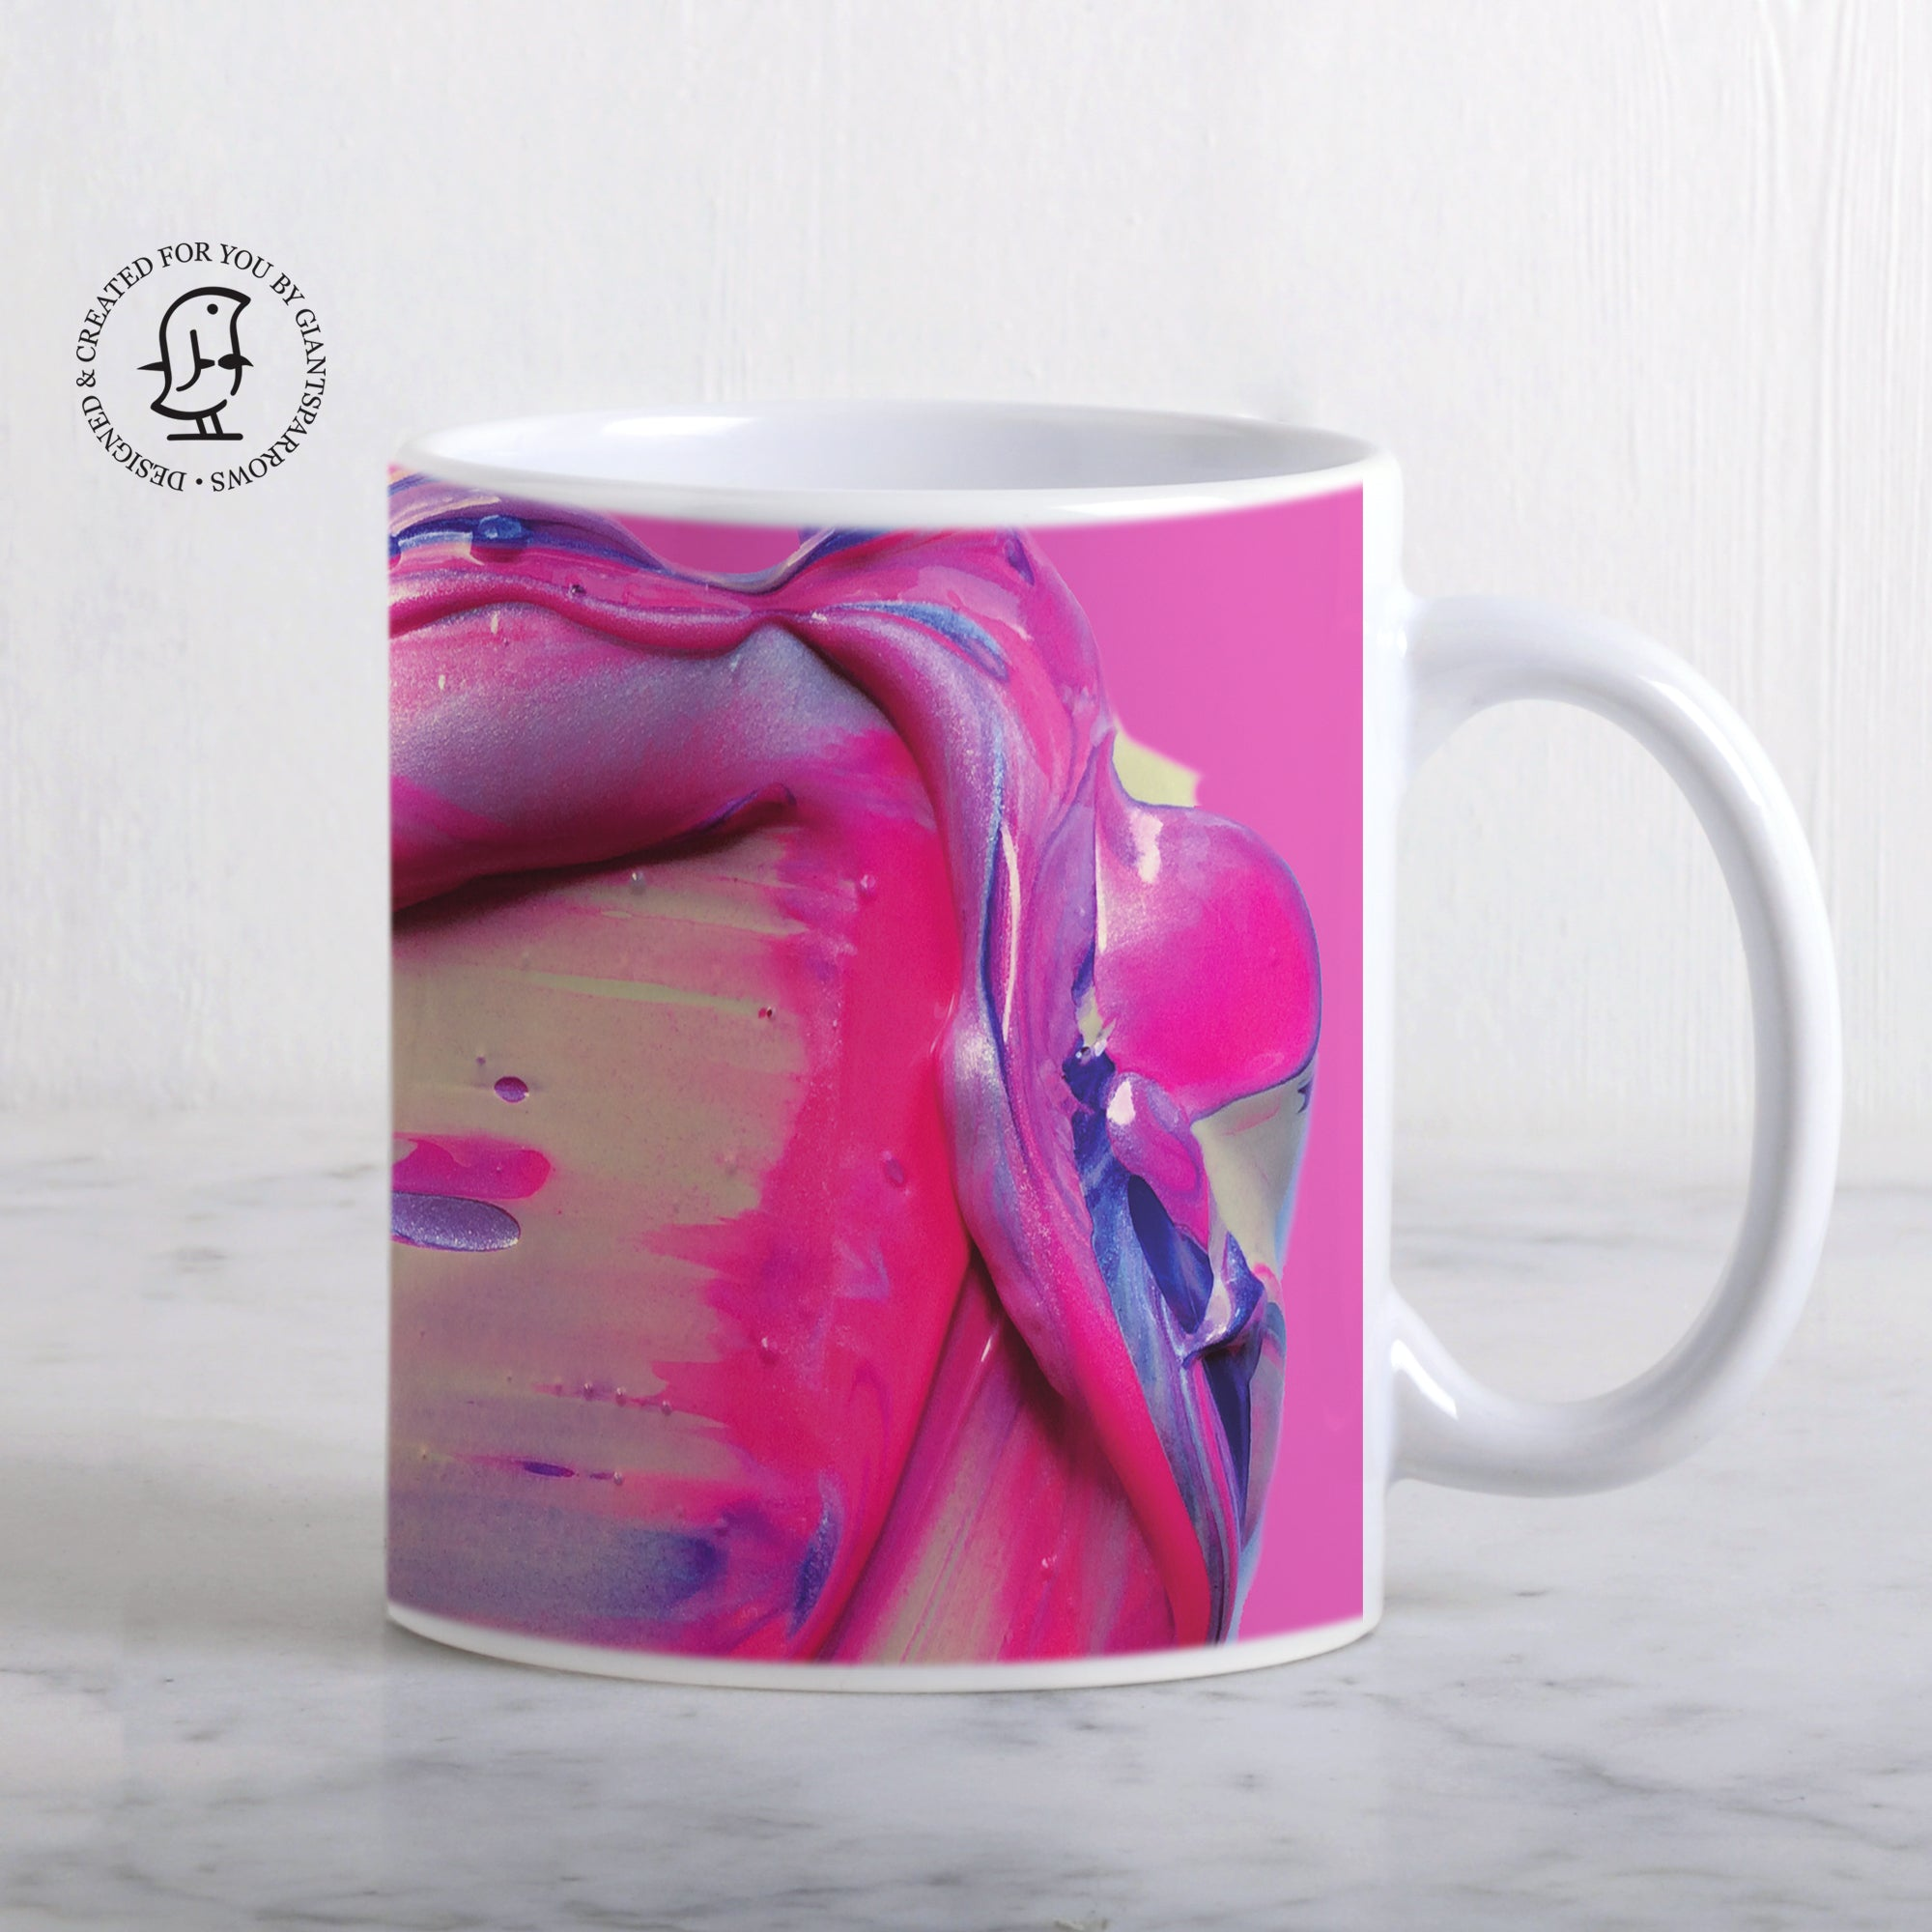 Lush and Rich Mix of Bright Pink and Purple Paints Design Mug